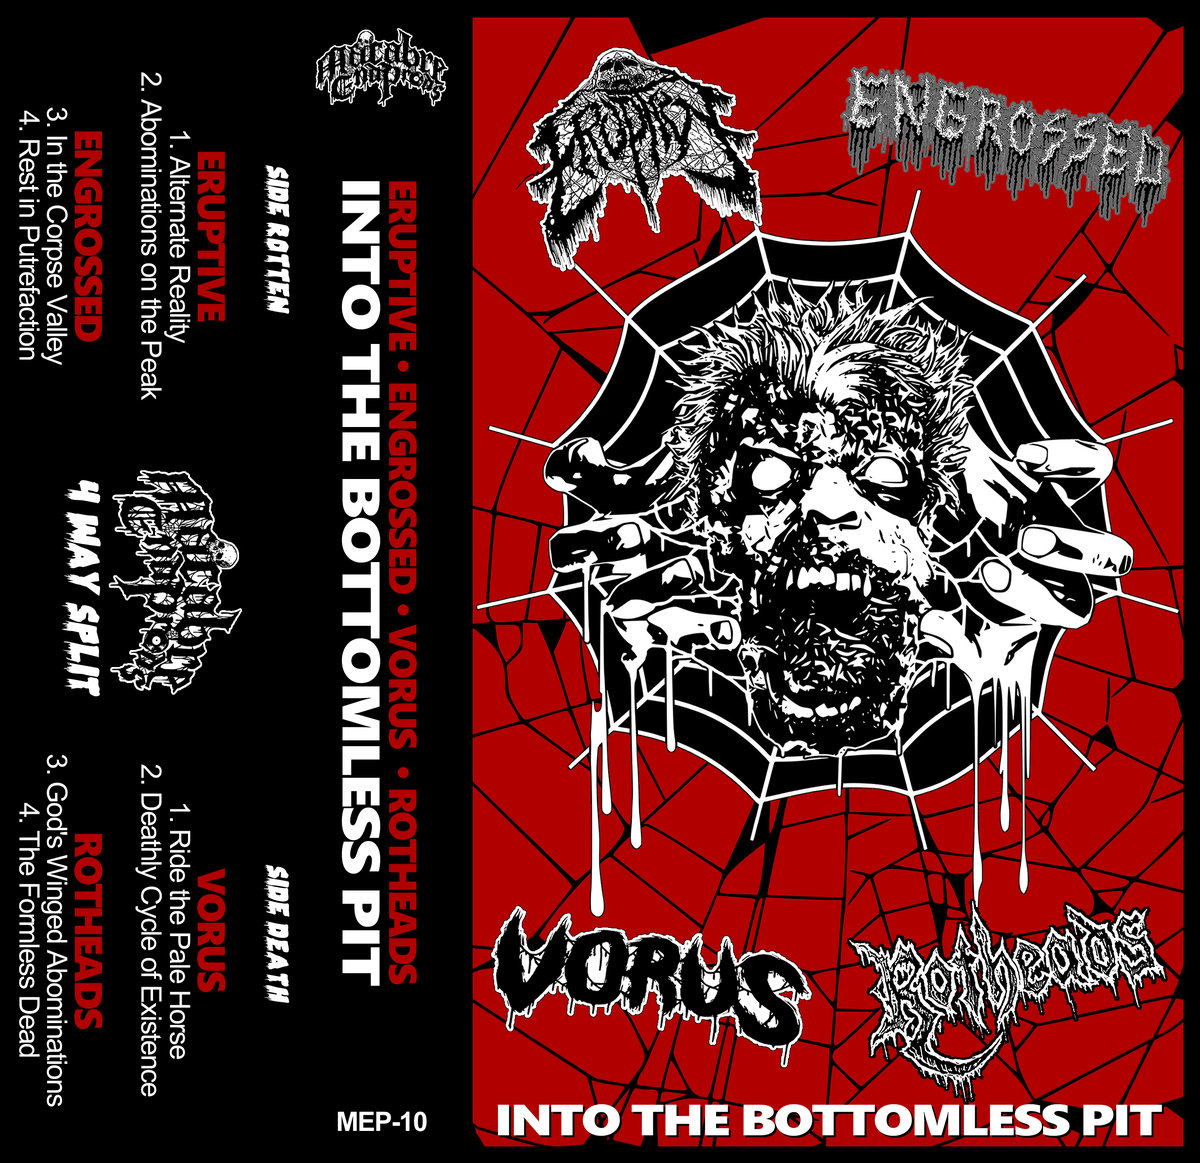 eruptive / engrossed / vorus / rotheads – into the bottomless pit [split]